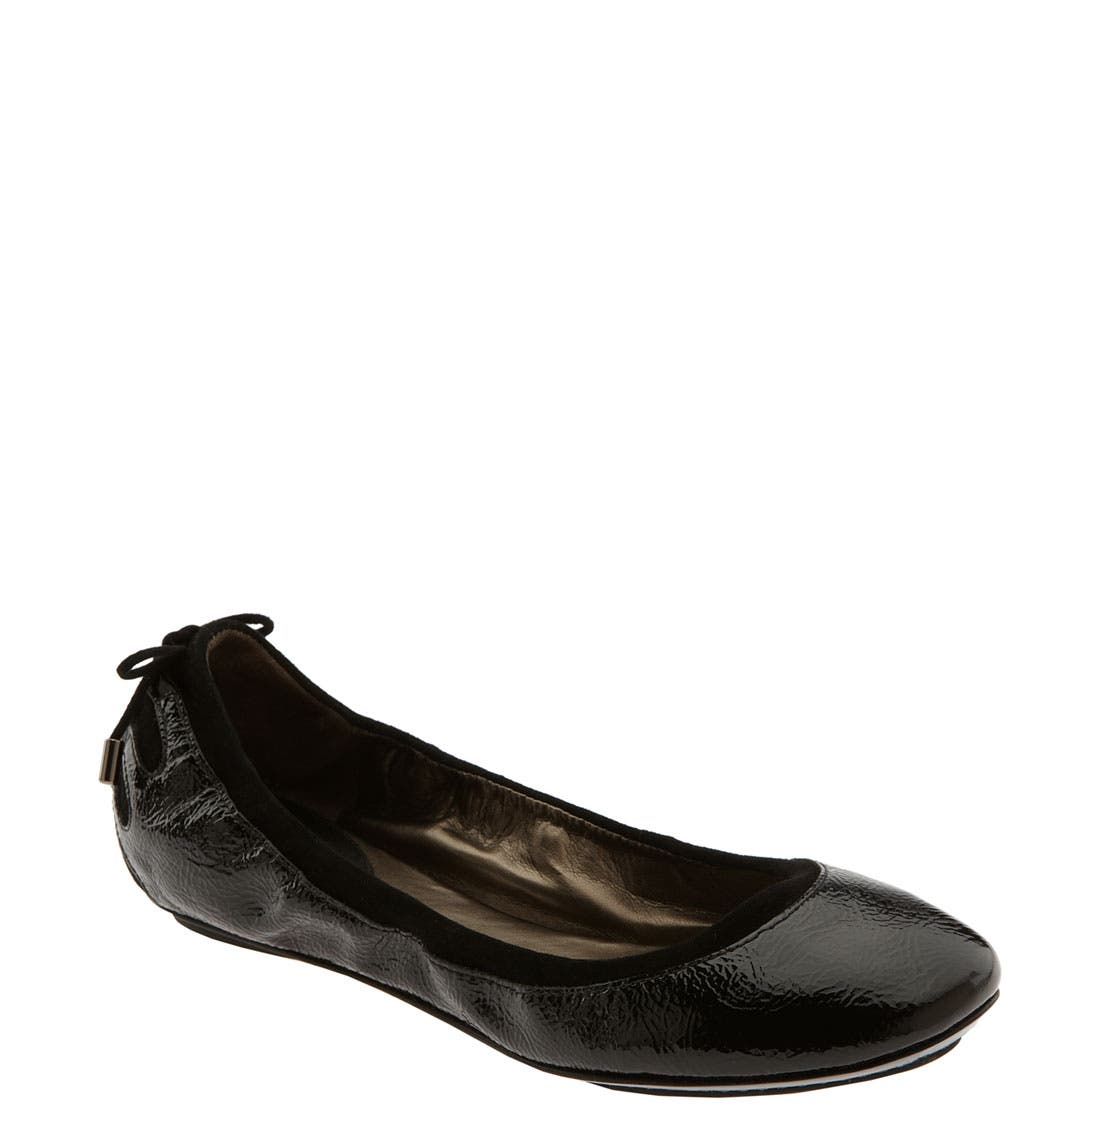 Maria Sharapova by Cole Haan 'Air Bacara' Flat, Main, color, 001